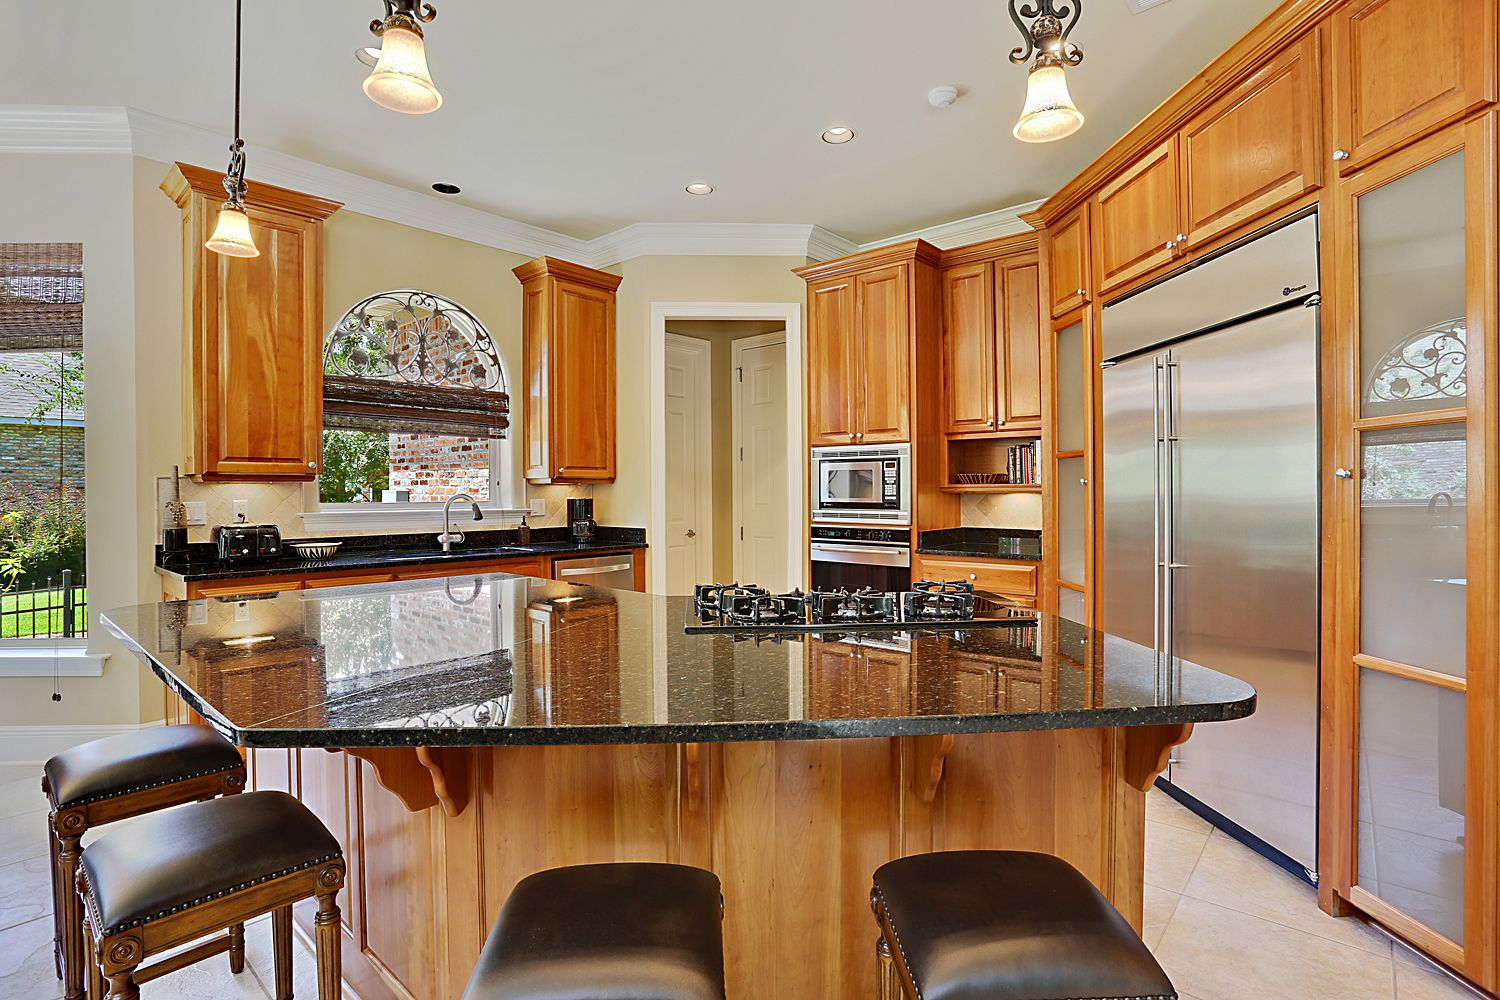 A beautiful modern kitchen with all stainless steel